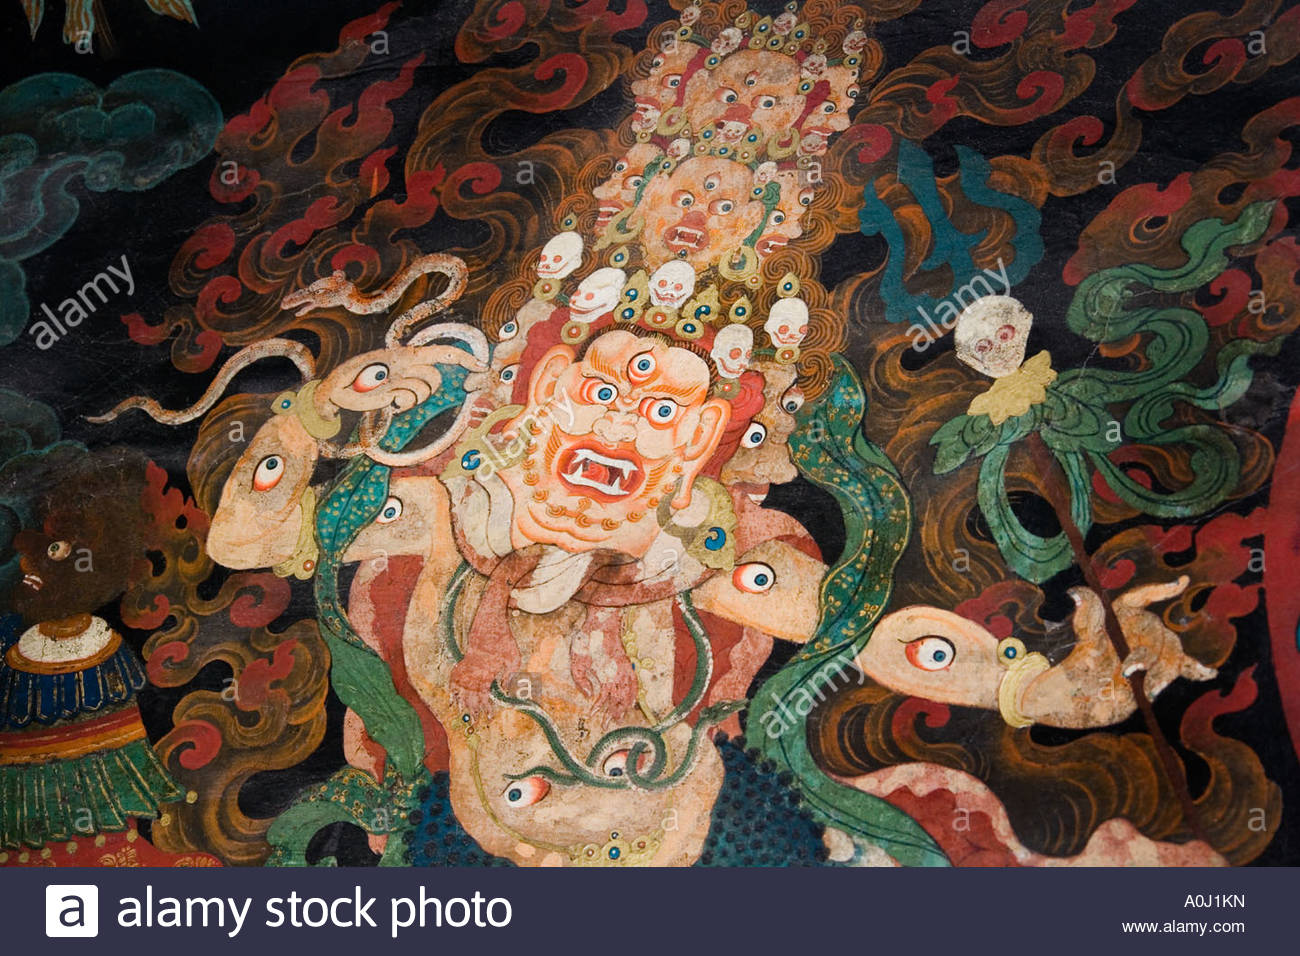 Museum of Antique Currency Beijing, Buddhist religious wall paintings in Nechung Monastery near Lhasa ...